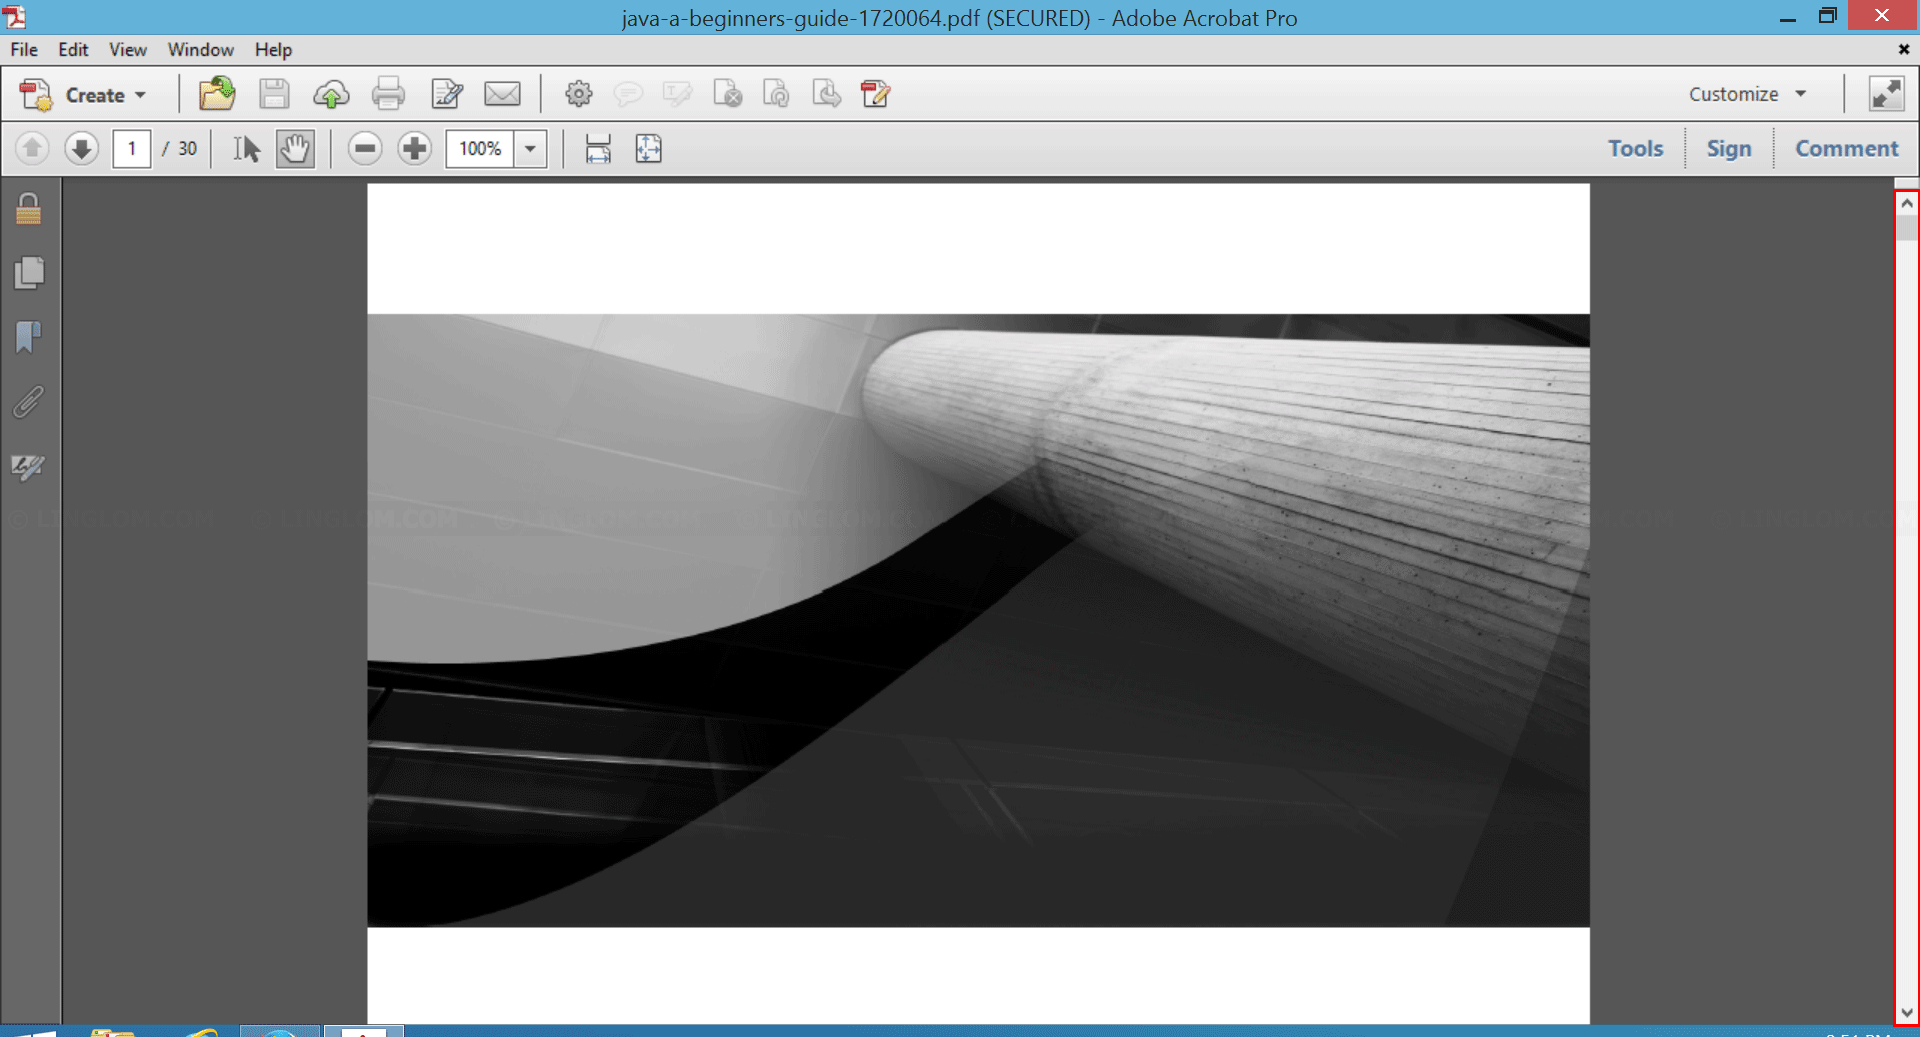 Scroll Bars is visible on Adobe Acrobat